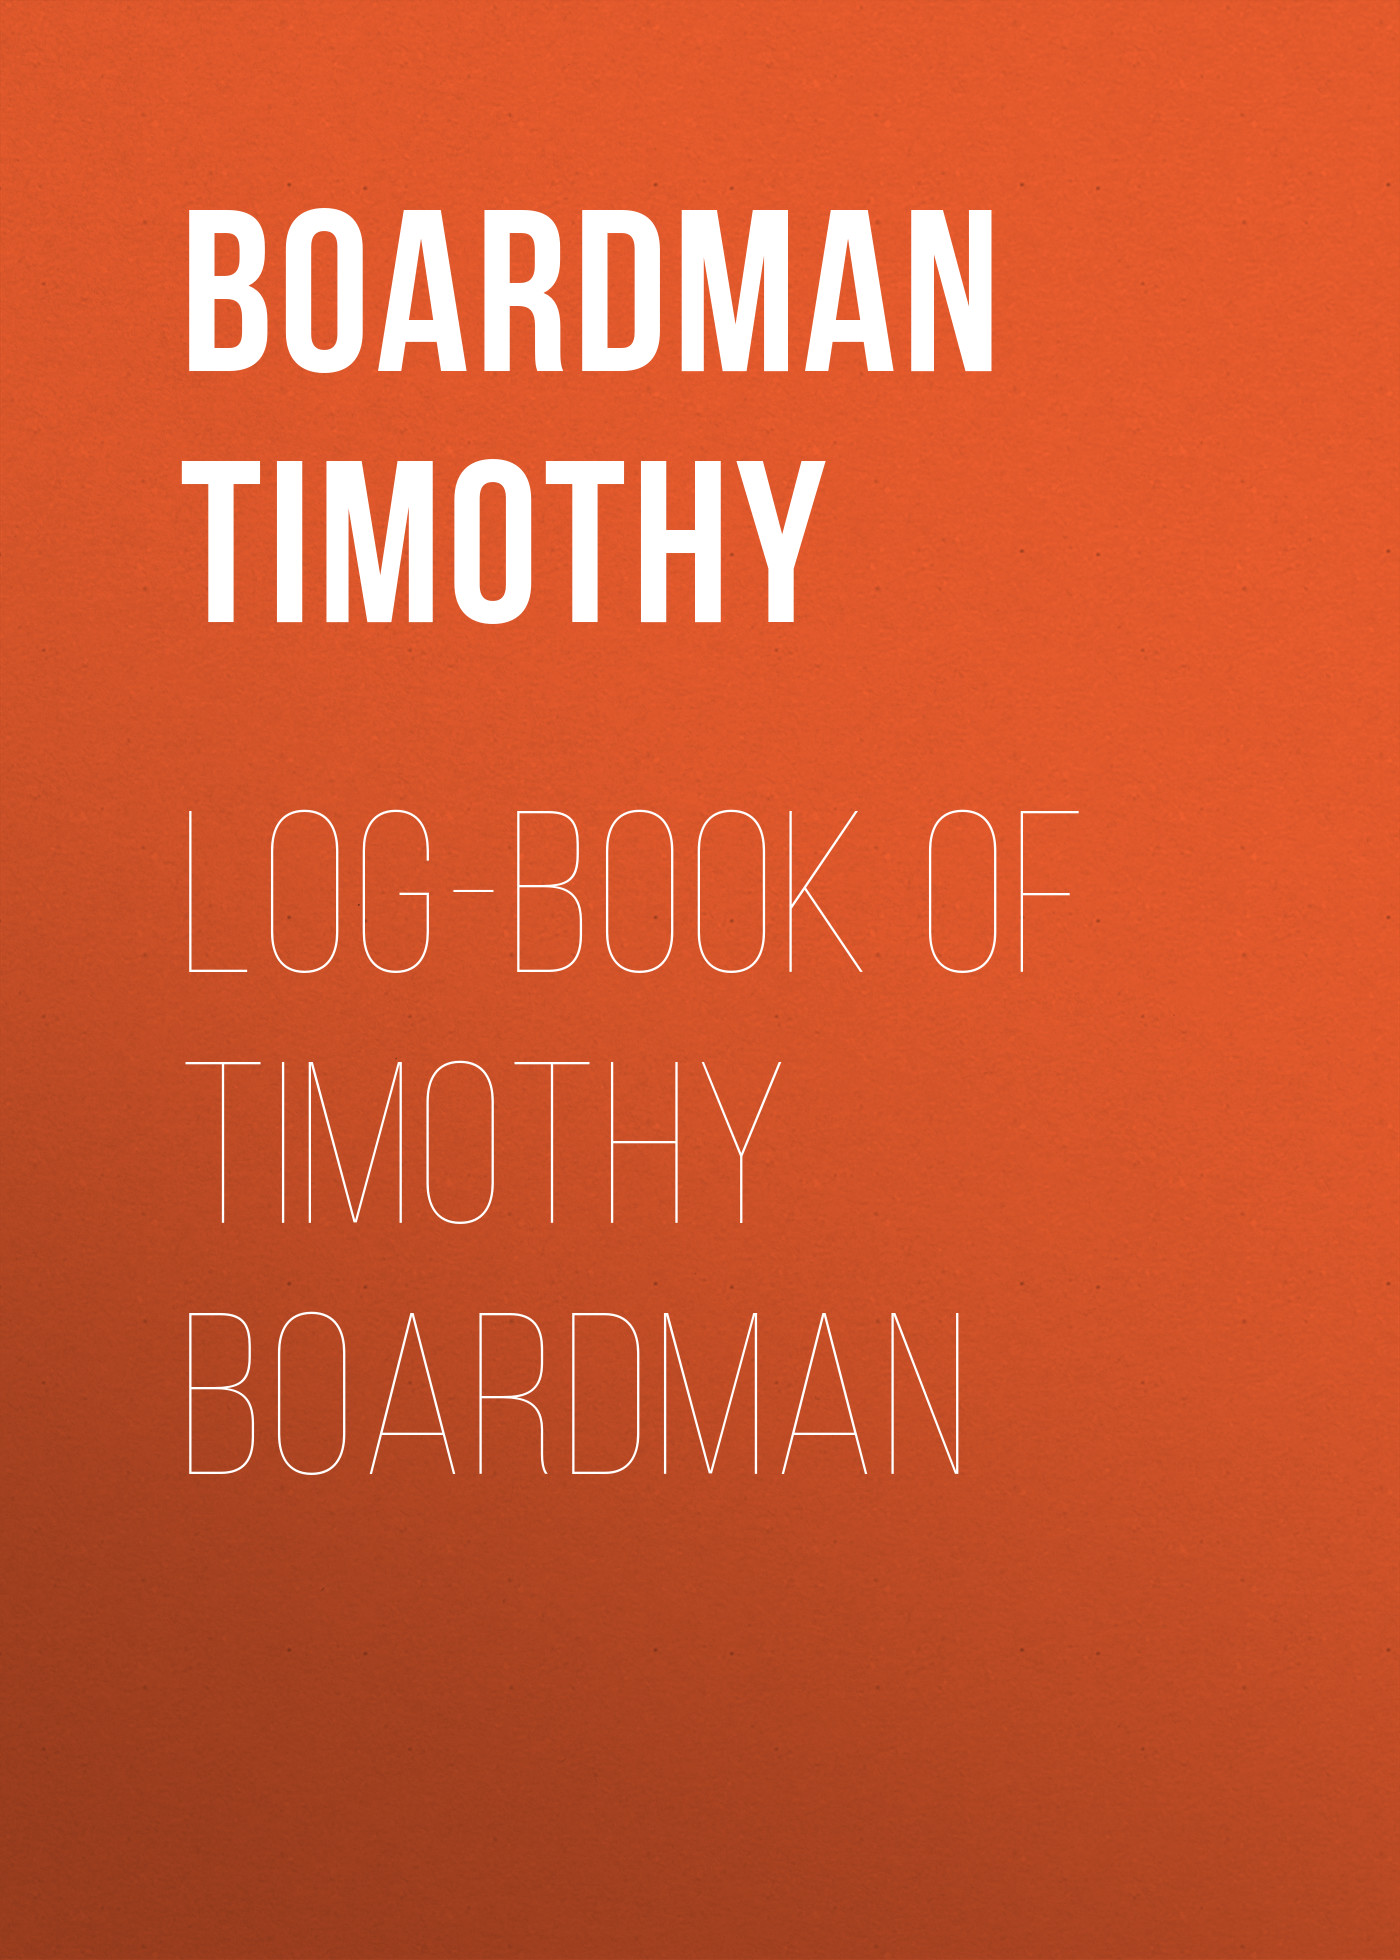 Boardman Timothy Log-book of Timothy Boardman